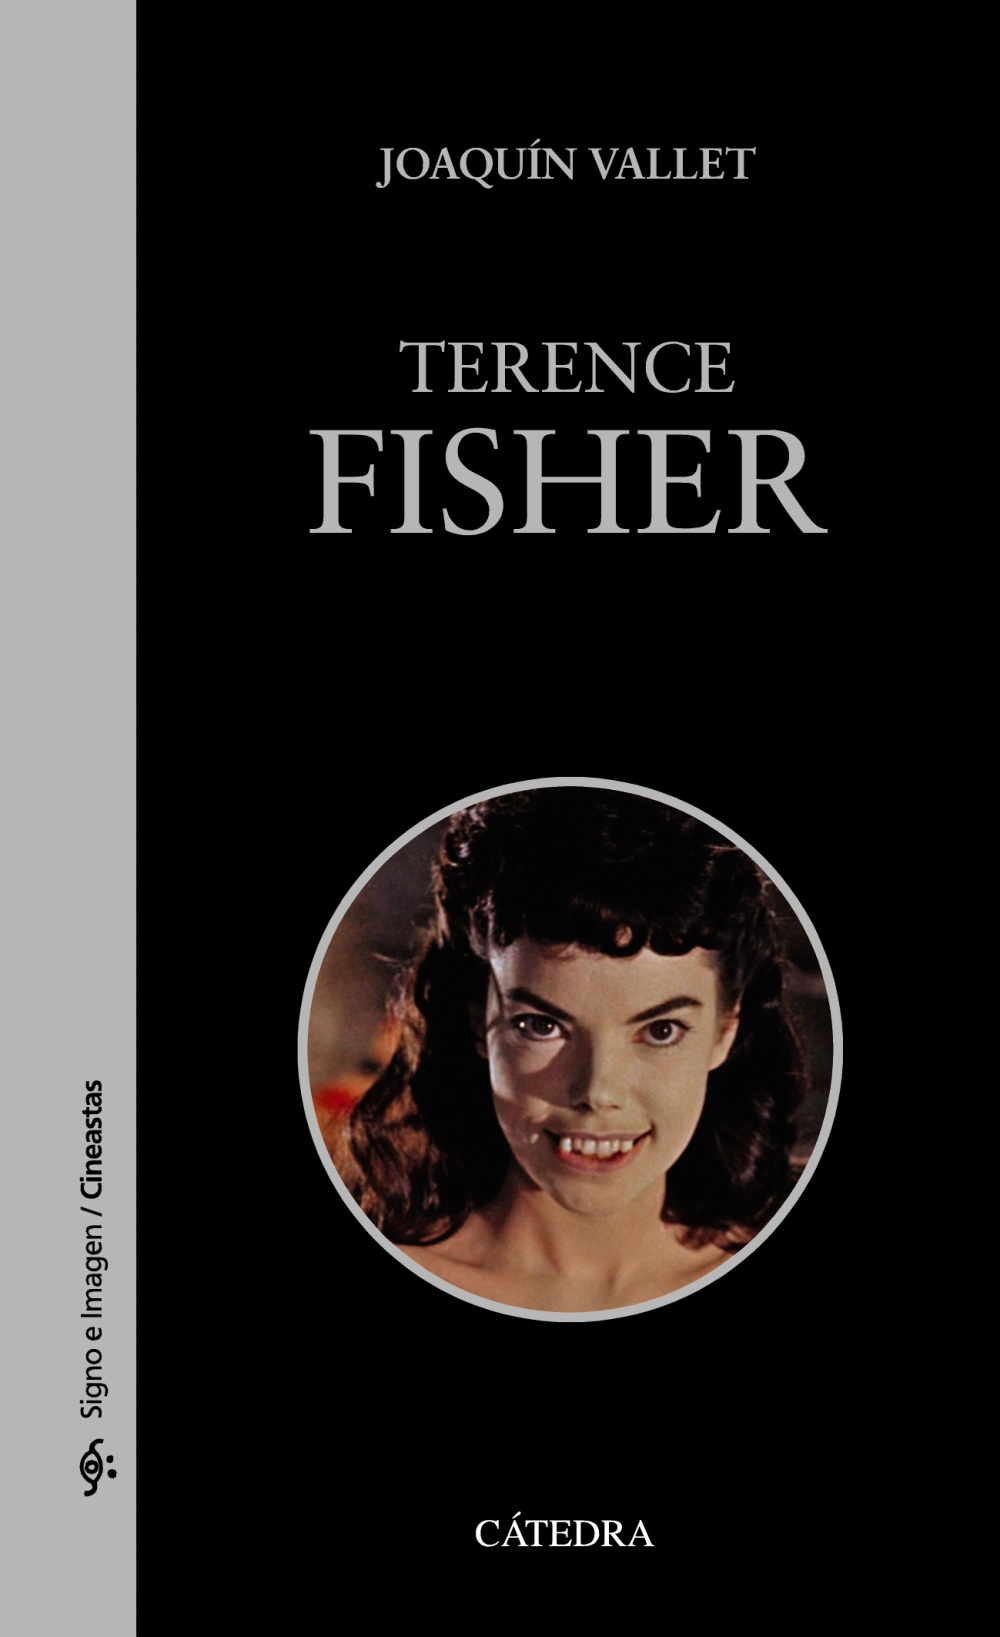 Descargar TERENCE FISHER